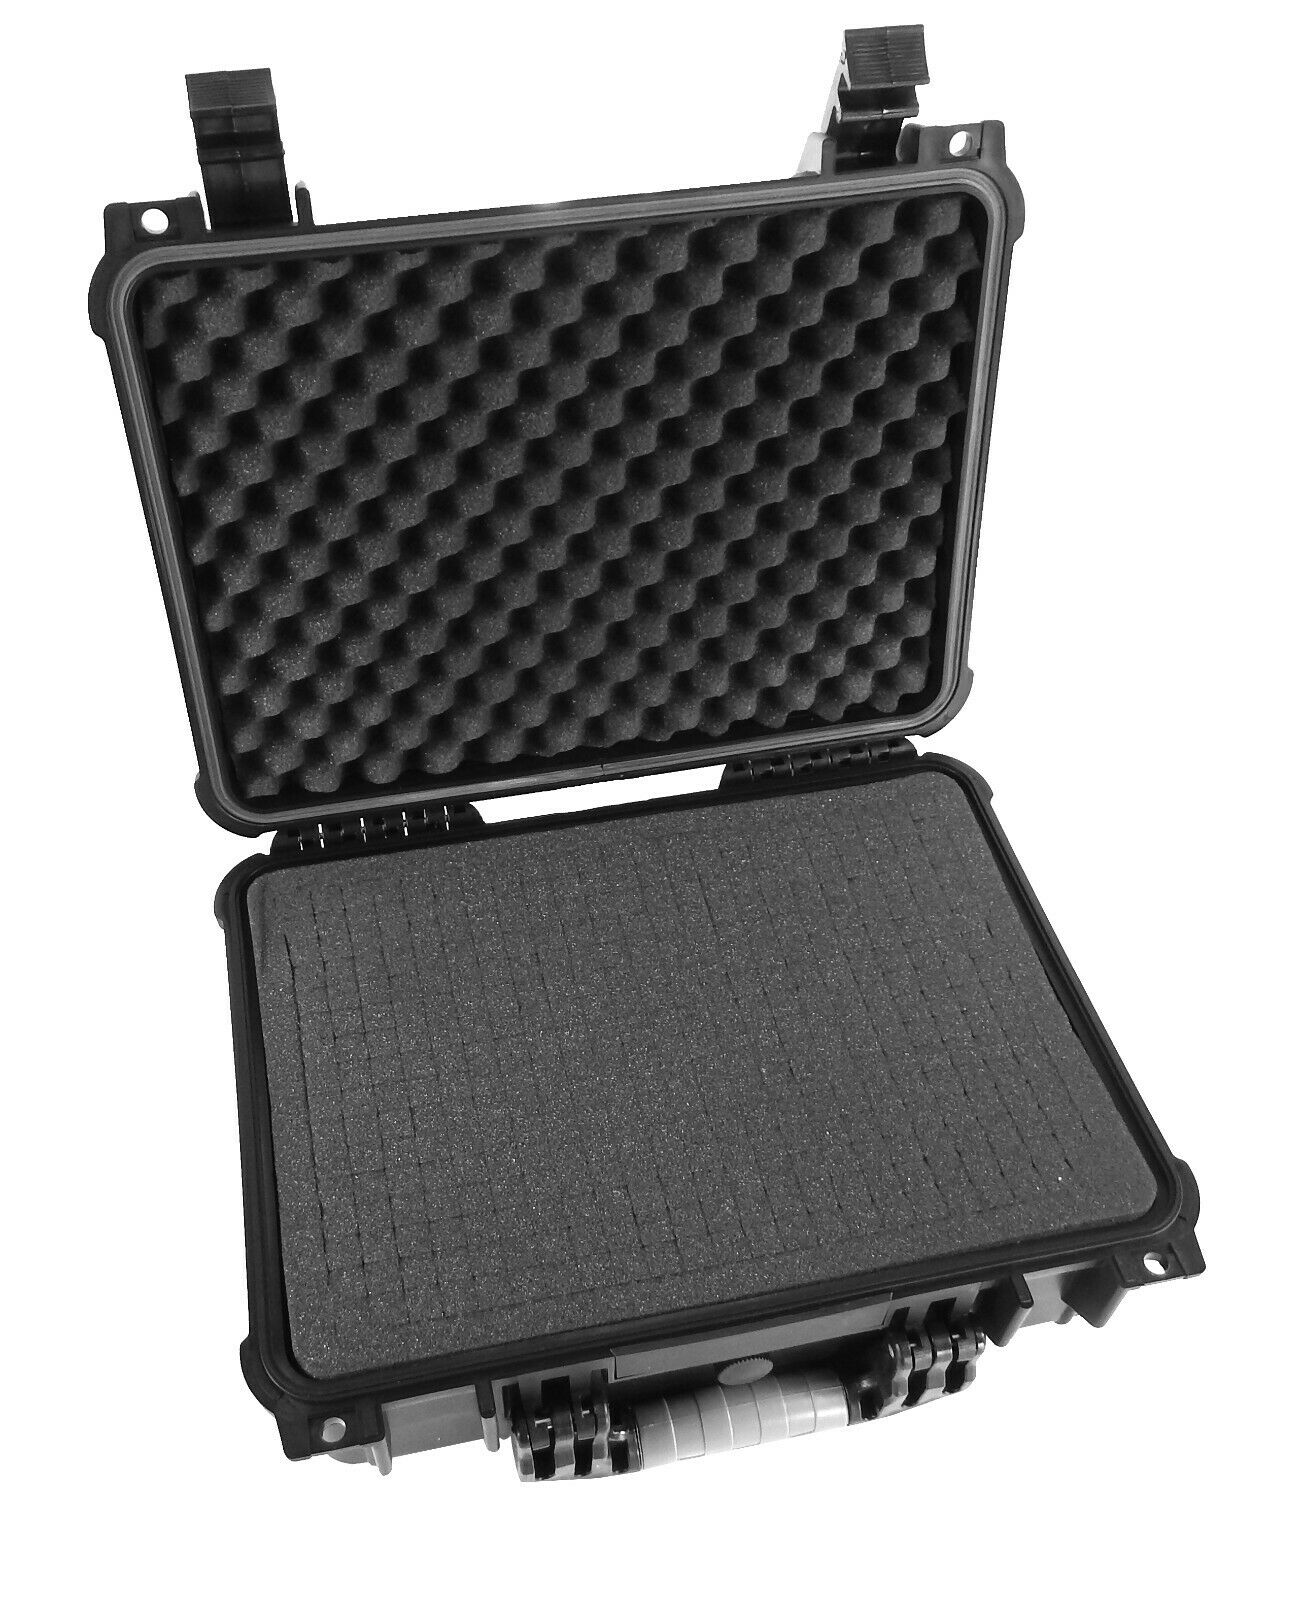 Waterproof Mic Case for NEAT Beecase Desktop USB Mic and Accessories - CASE ONLY